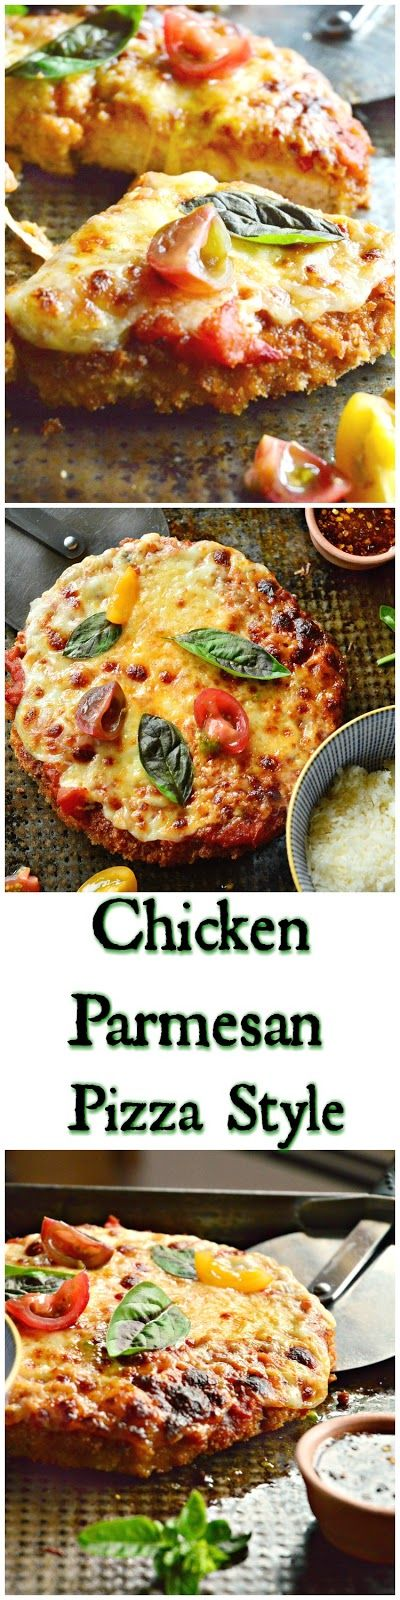 """This chicken parmesan pizza style is a giant golden fried chicken patty topped with tomato sauce and cheese. Drizzled with spicy honey this version of chicken parm will have you wishing you made more."""" www.thisishowicook.com"""